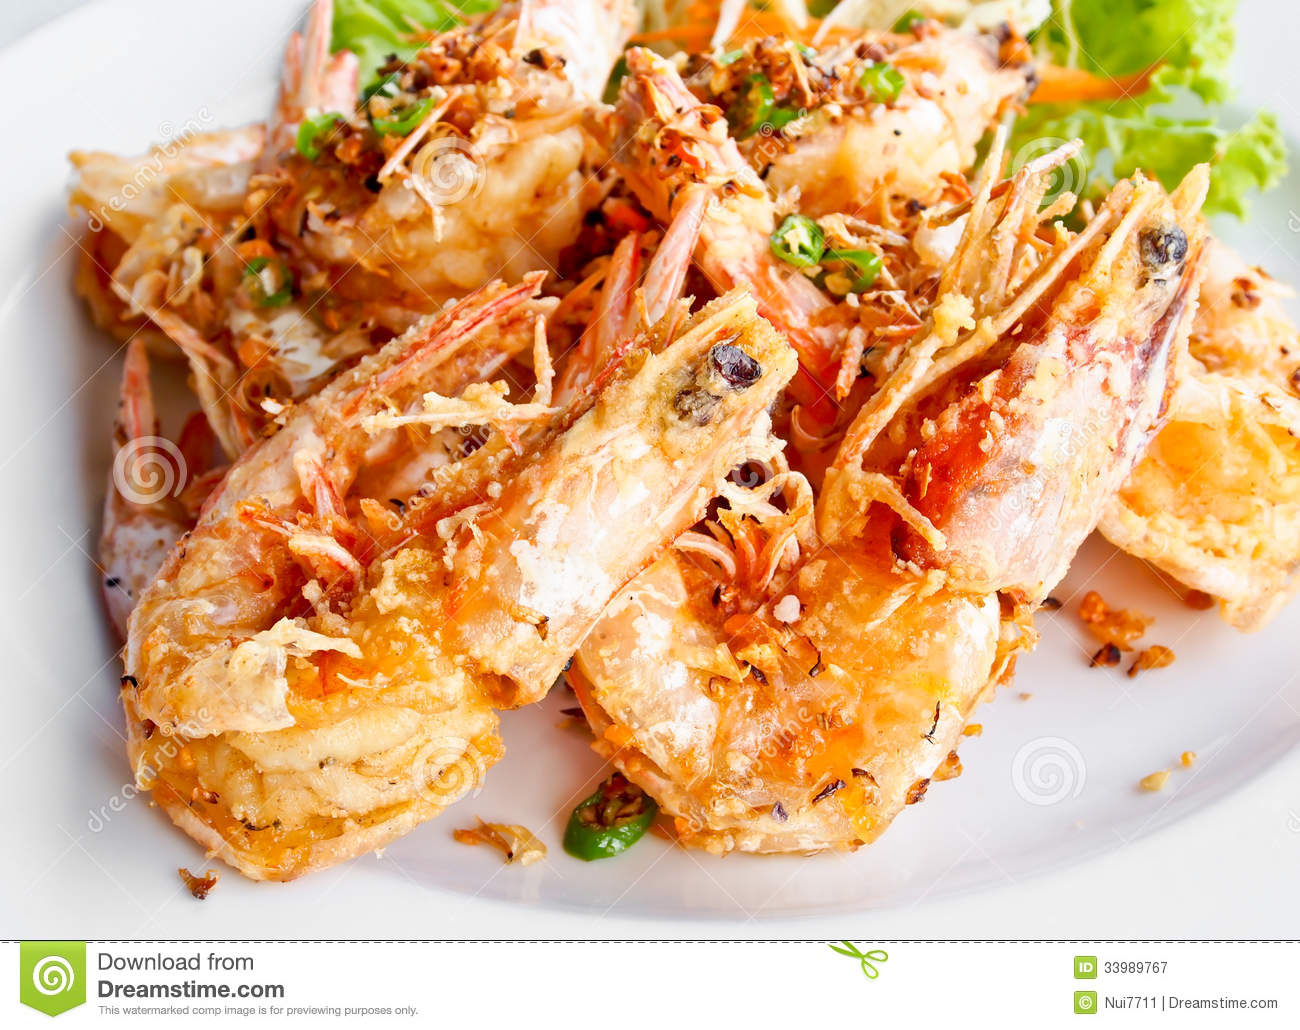 Thai Food, Fried Prawns With Garlic 3 Royalty Free Stock Photography ...: dreamstime.com/royalty-free-stock-photography-thai-food-fried...